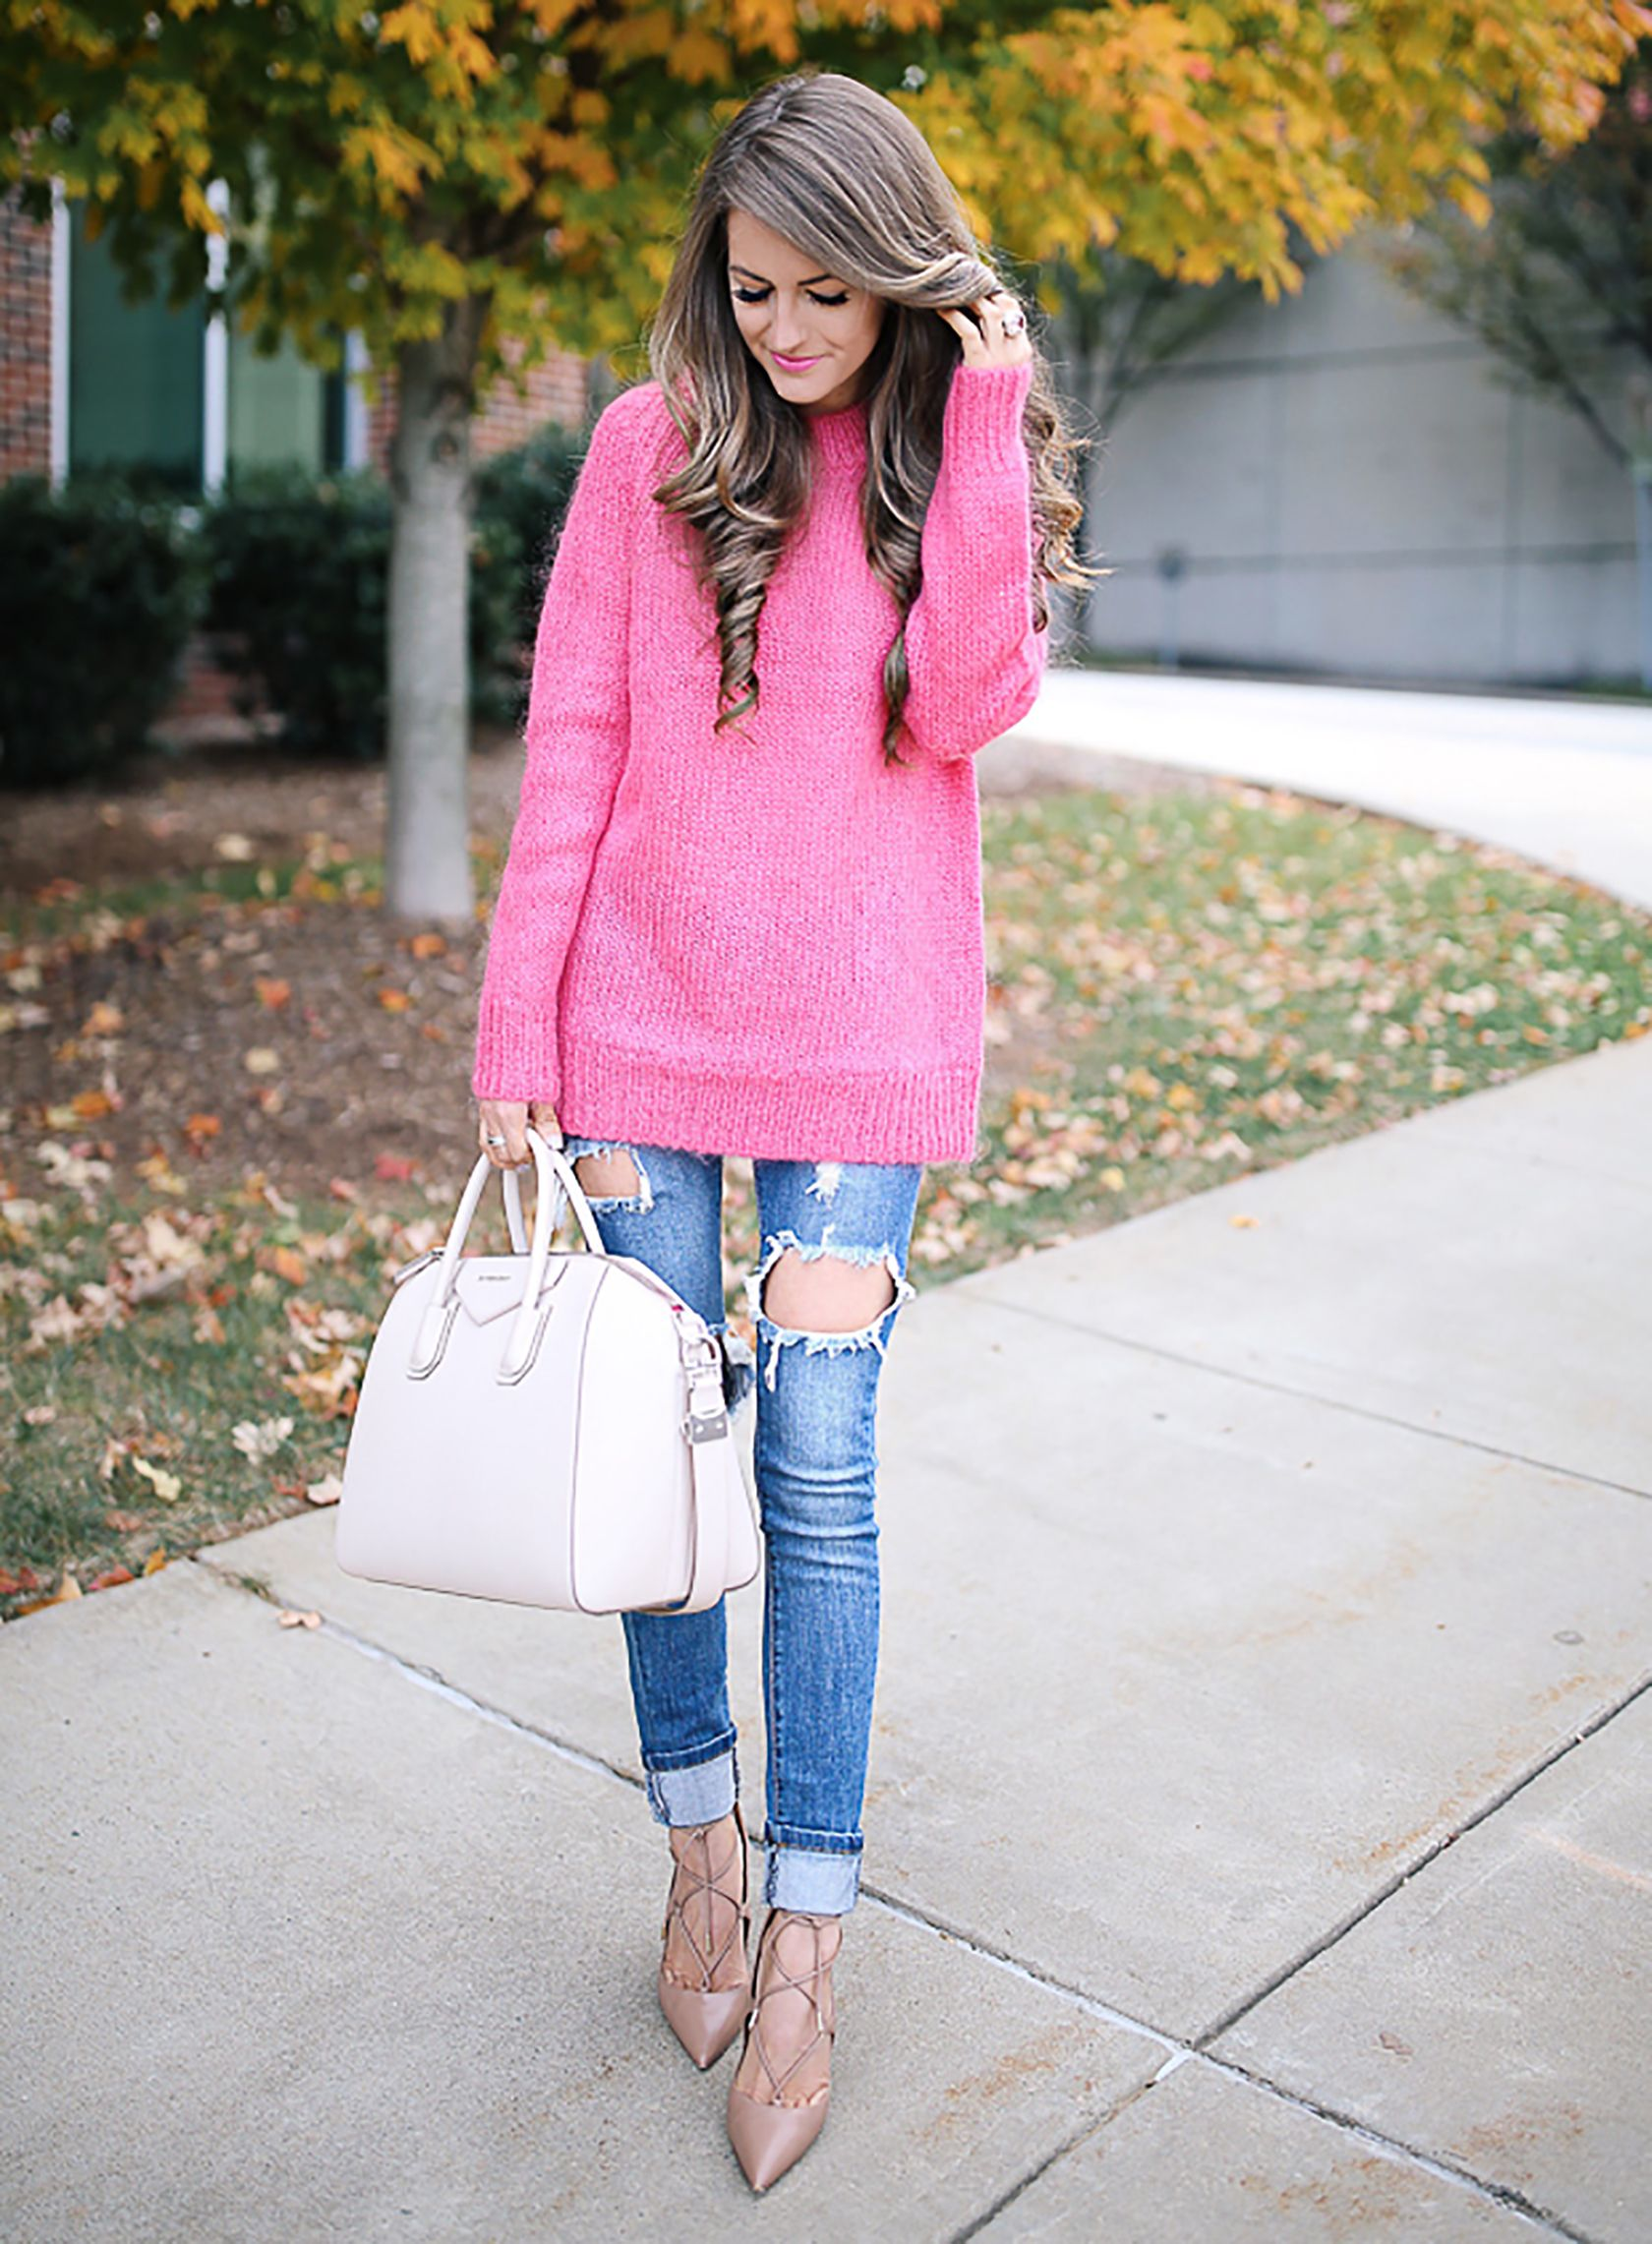 f763f7b30442d Sydne Style shows pink outfit ideas for fall with fashion blogger southern  curls pearls in hot pink sweater #pink #sweaters #jeans